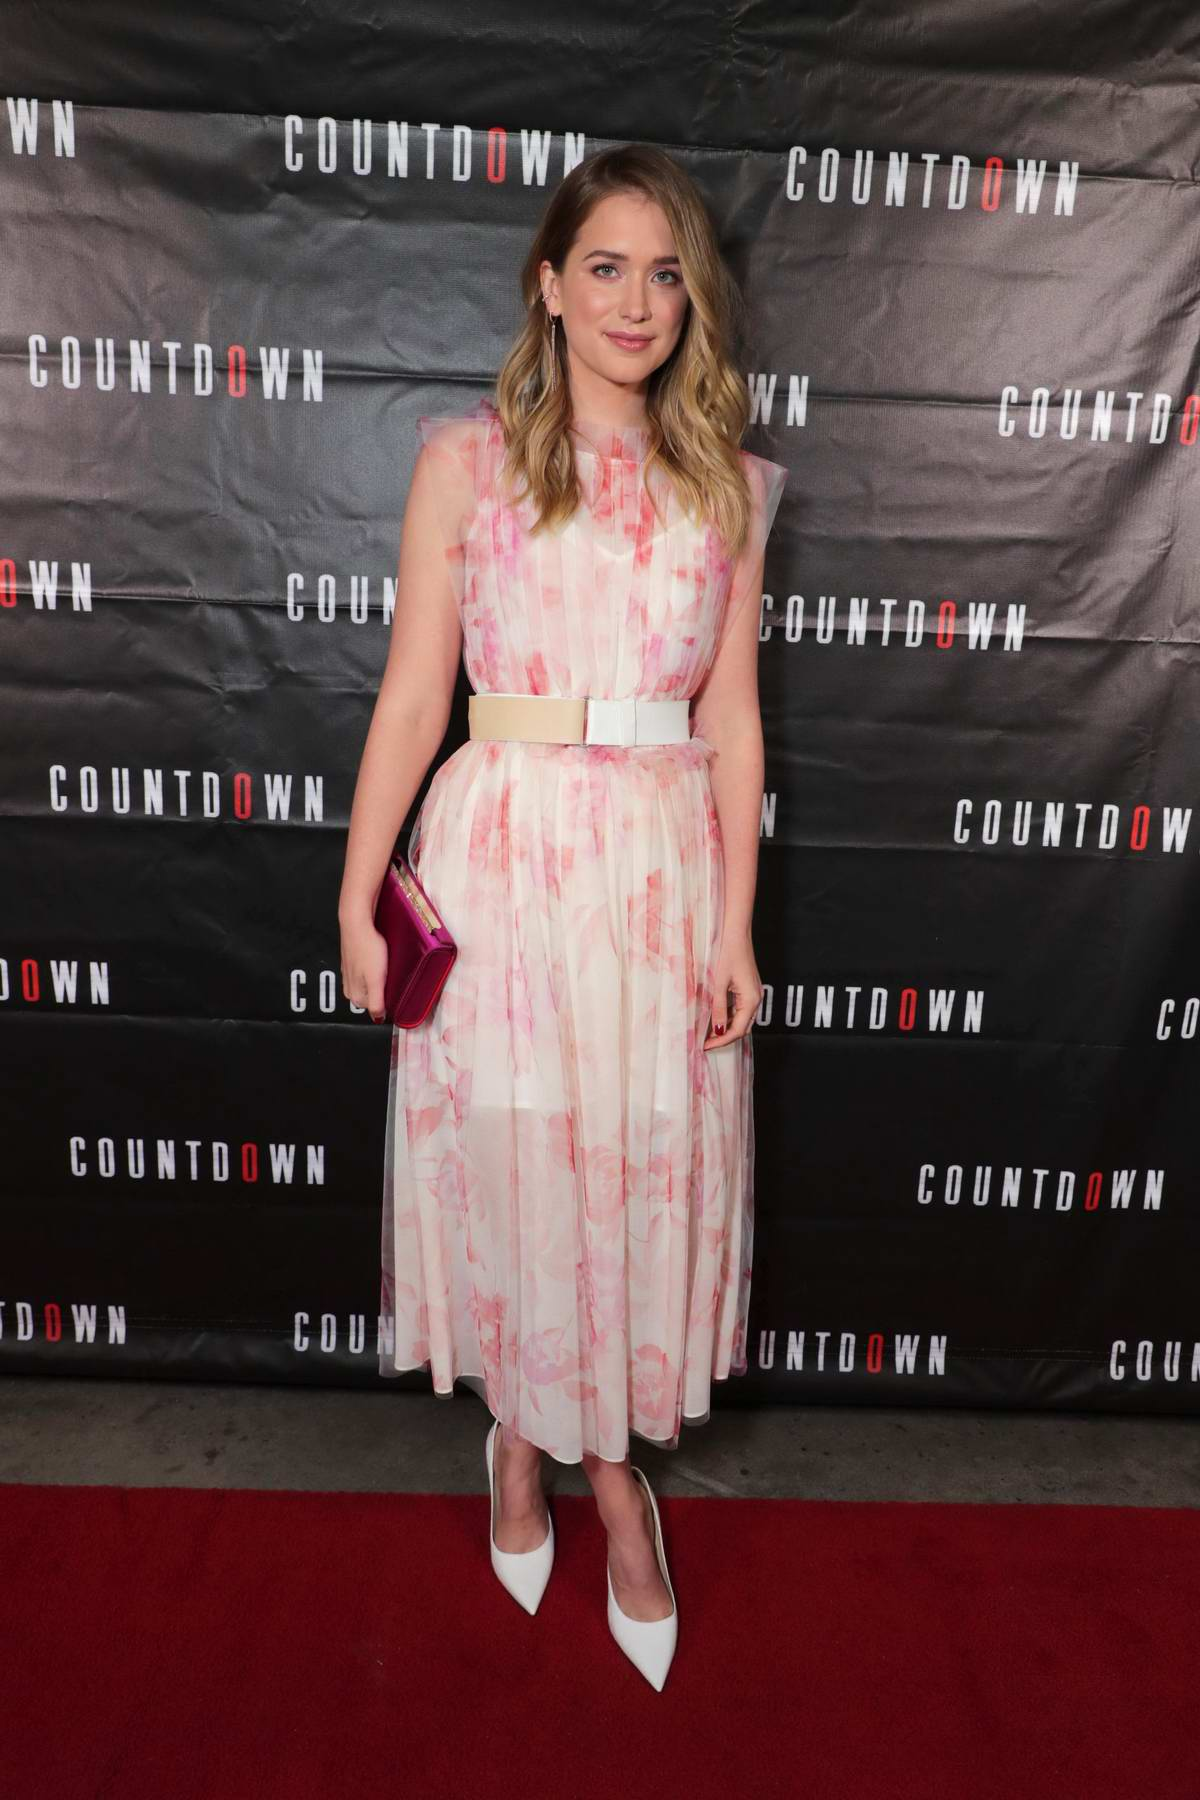 Elizabeth Lail attends a special screening of 'Countdown' in Los Angeles